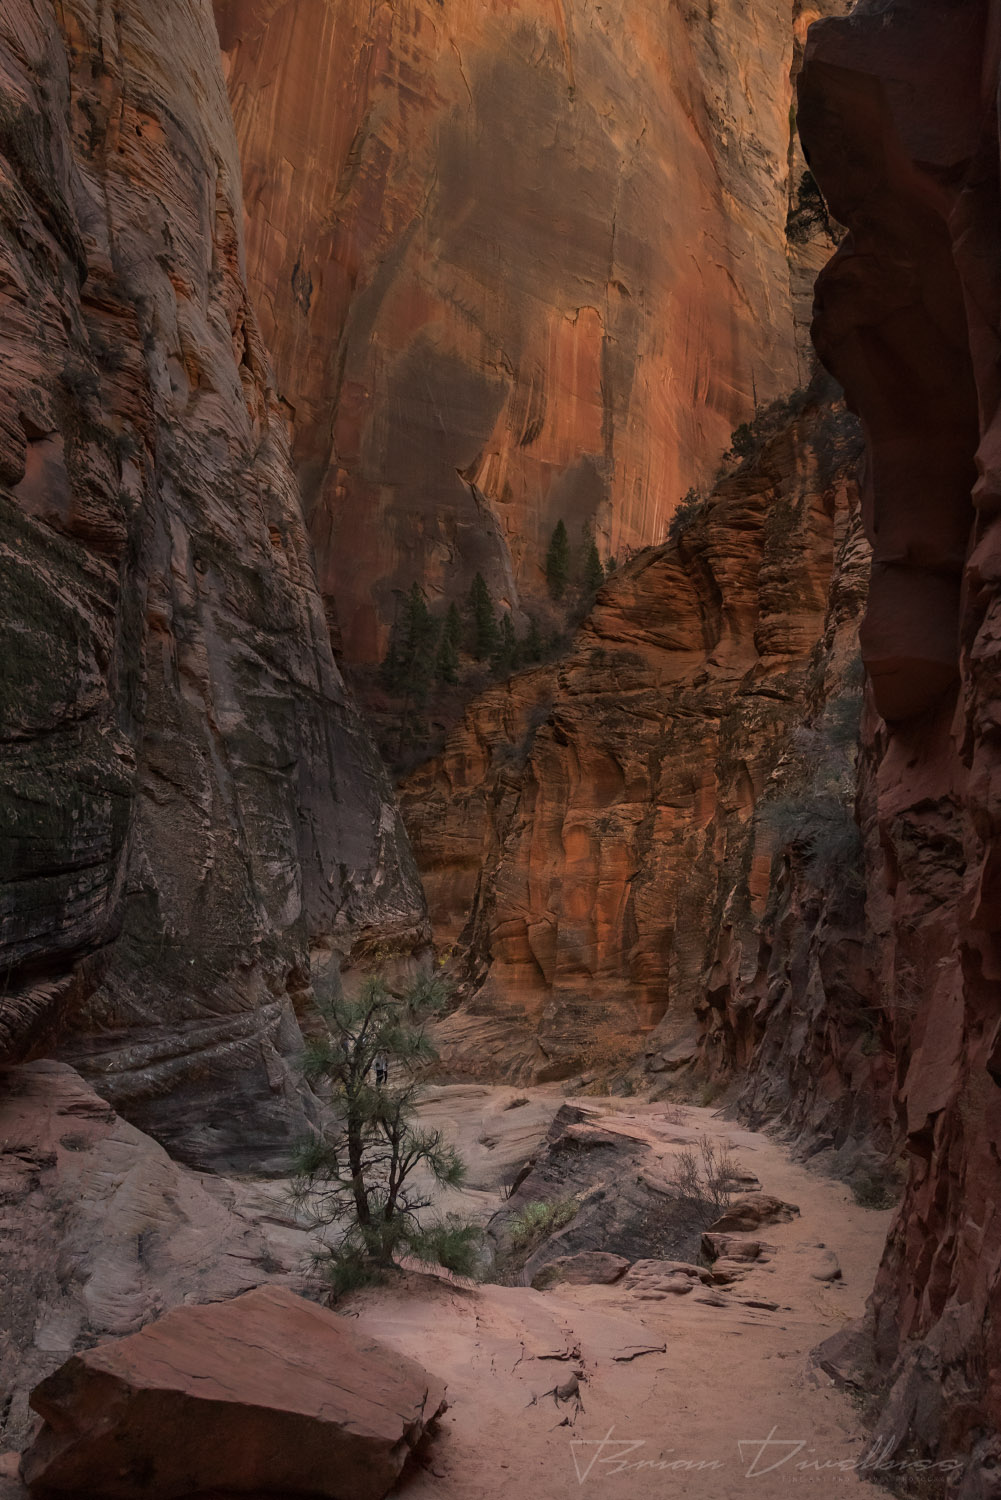 Narrow path and high walls of Weeping Rock Trail in Zion National Park.